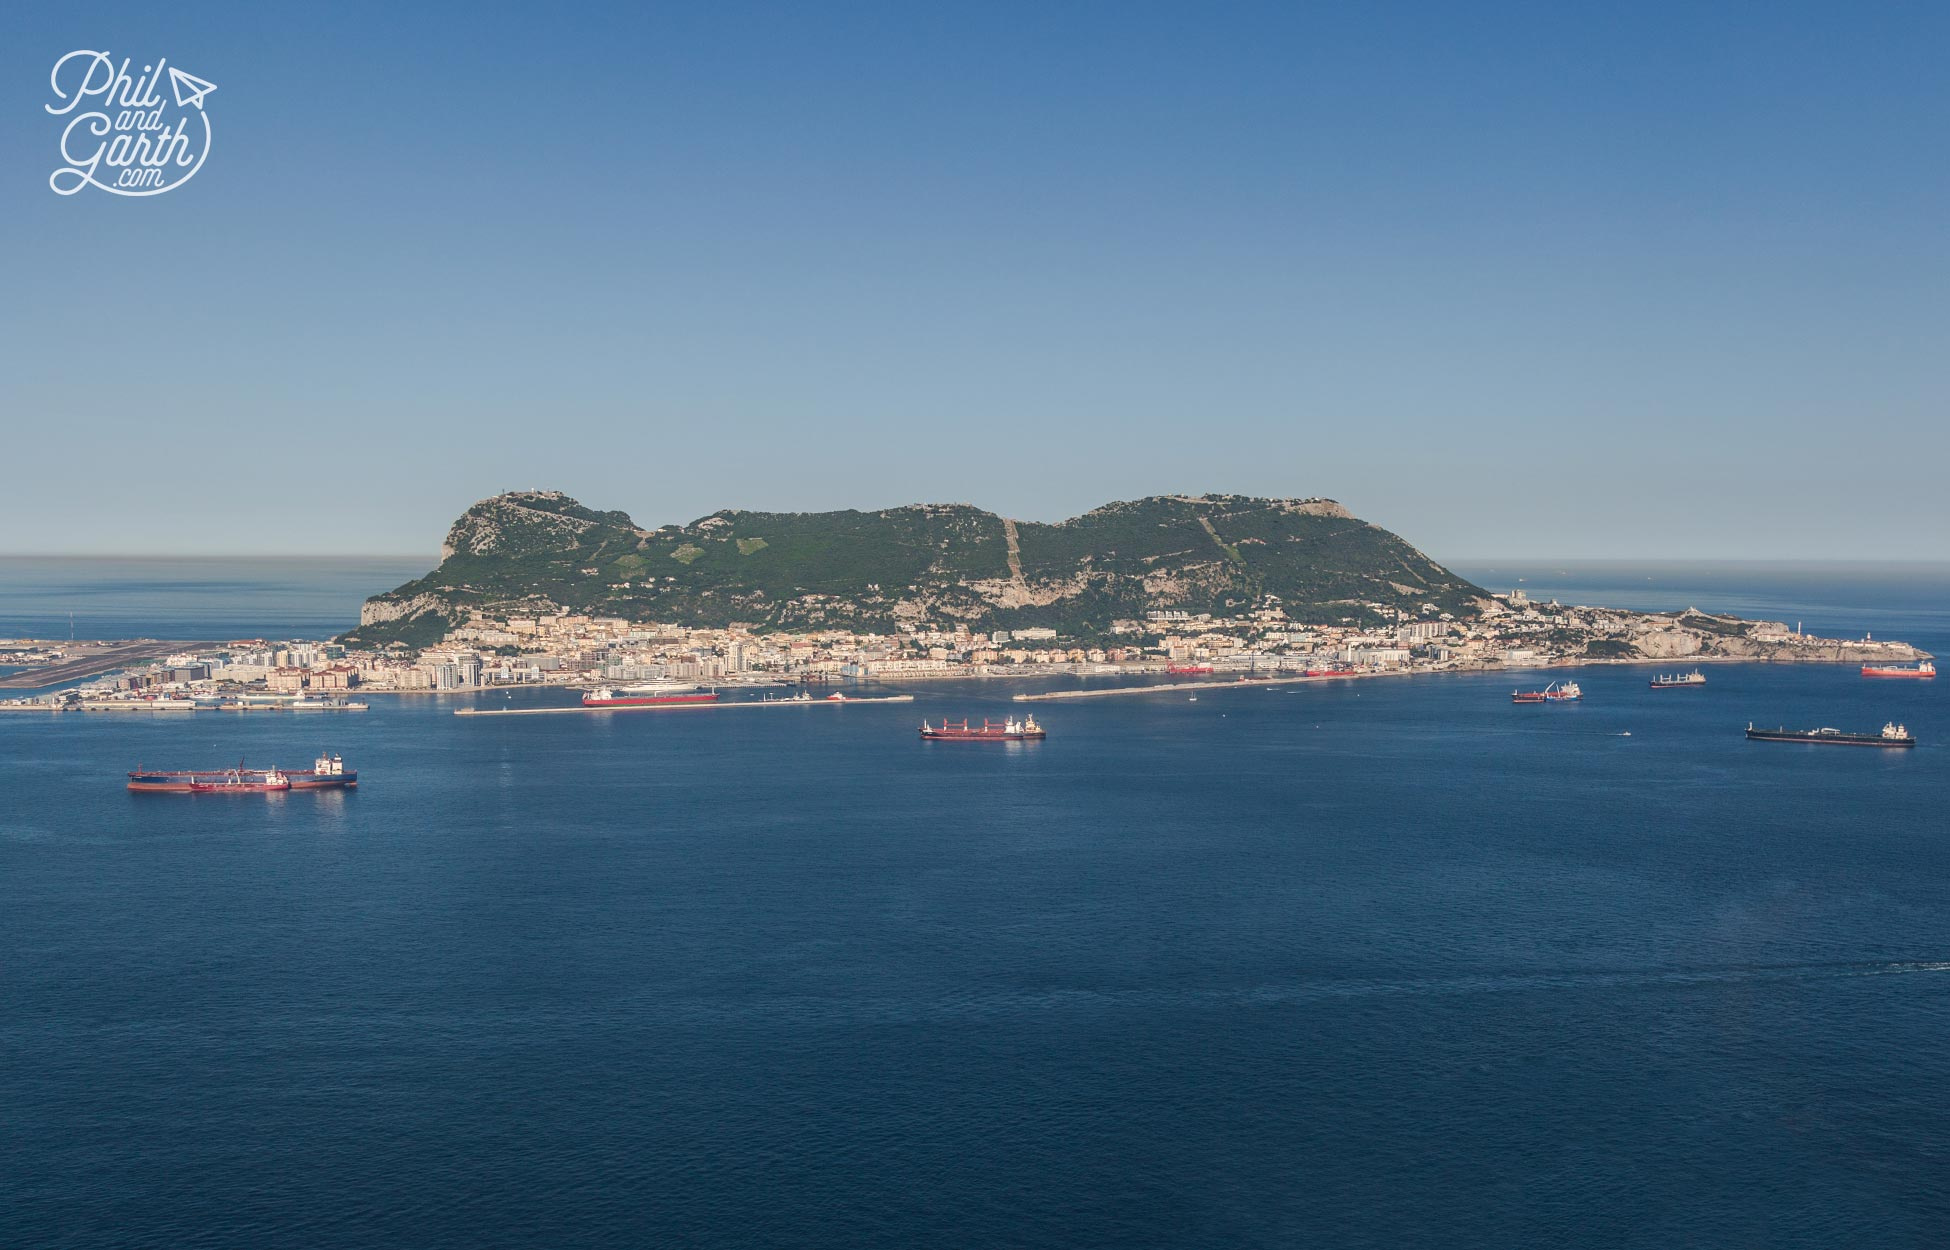 Gibraltar is a British Overseas Territory